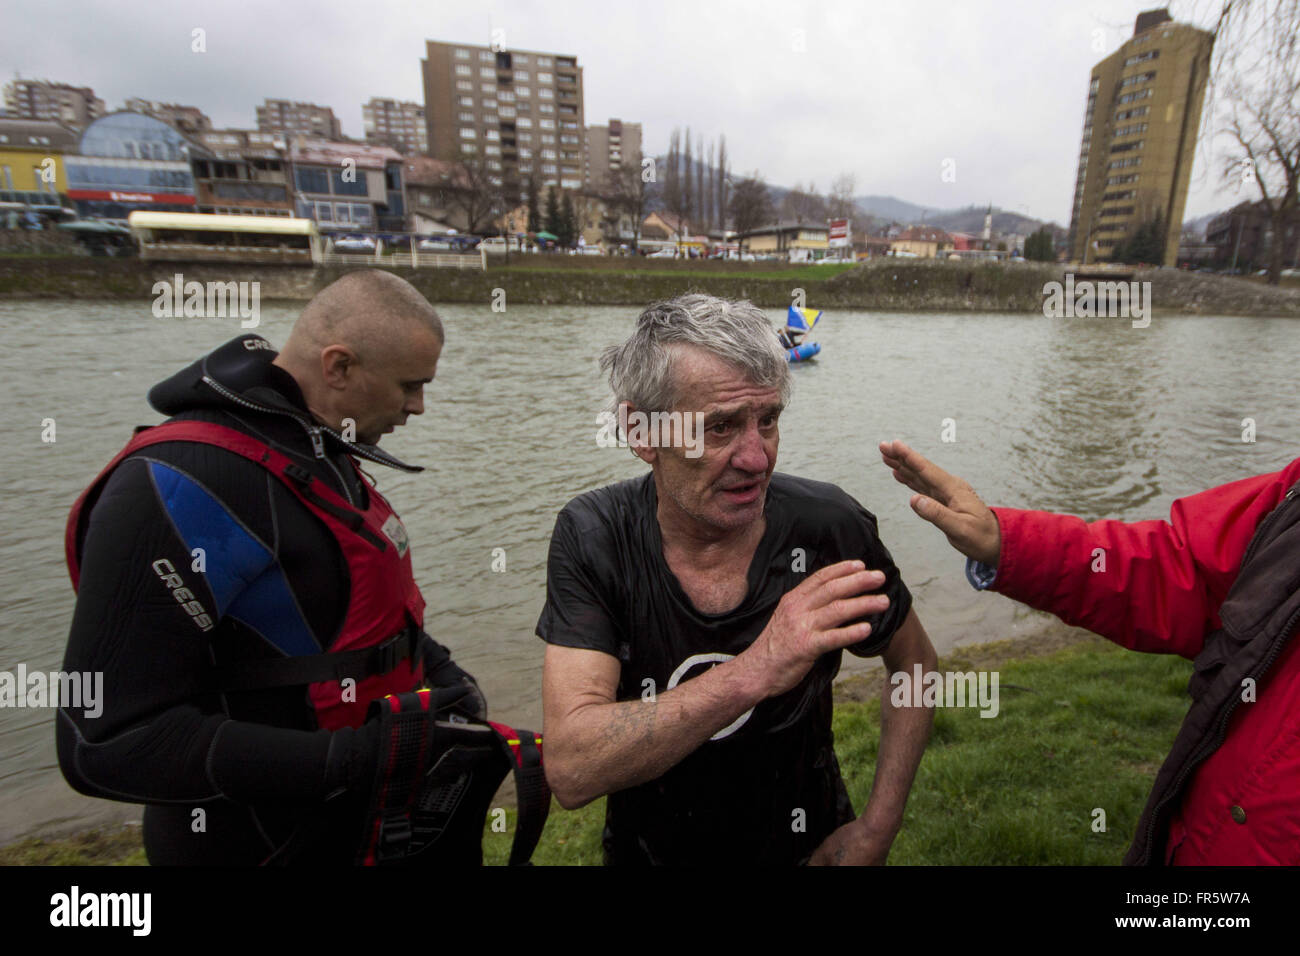 Zenica, Bosnia and Herzegovina. 21st Mar, 2016. People greet EMILIAN KNEZEVIC who is 72 years old. He swims every - Stock Image